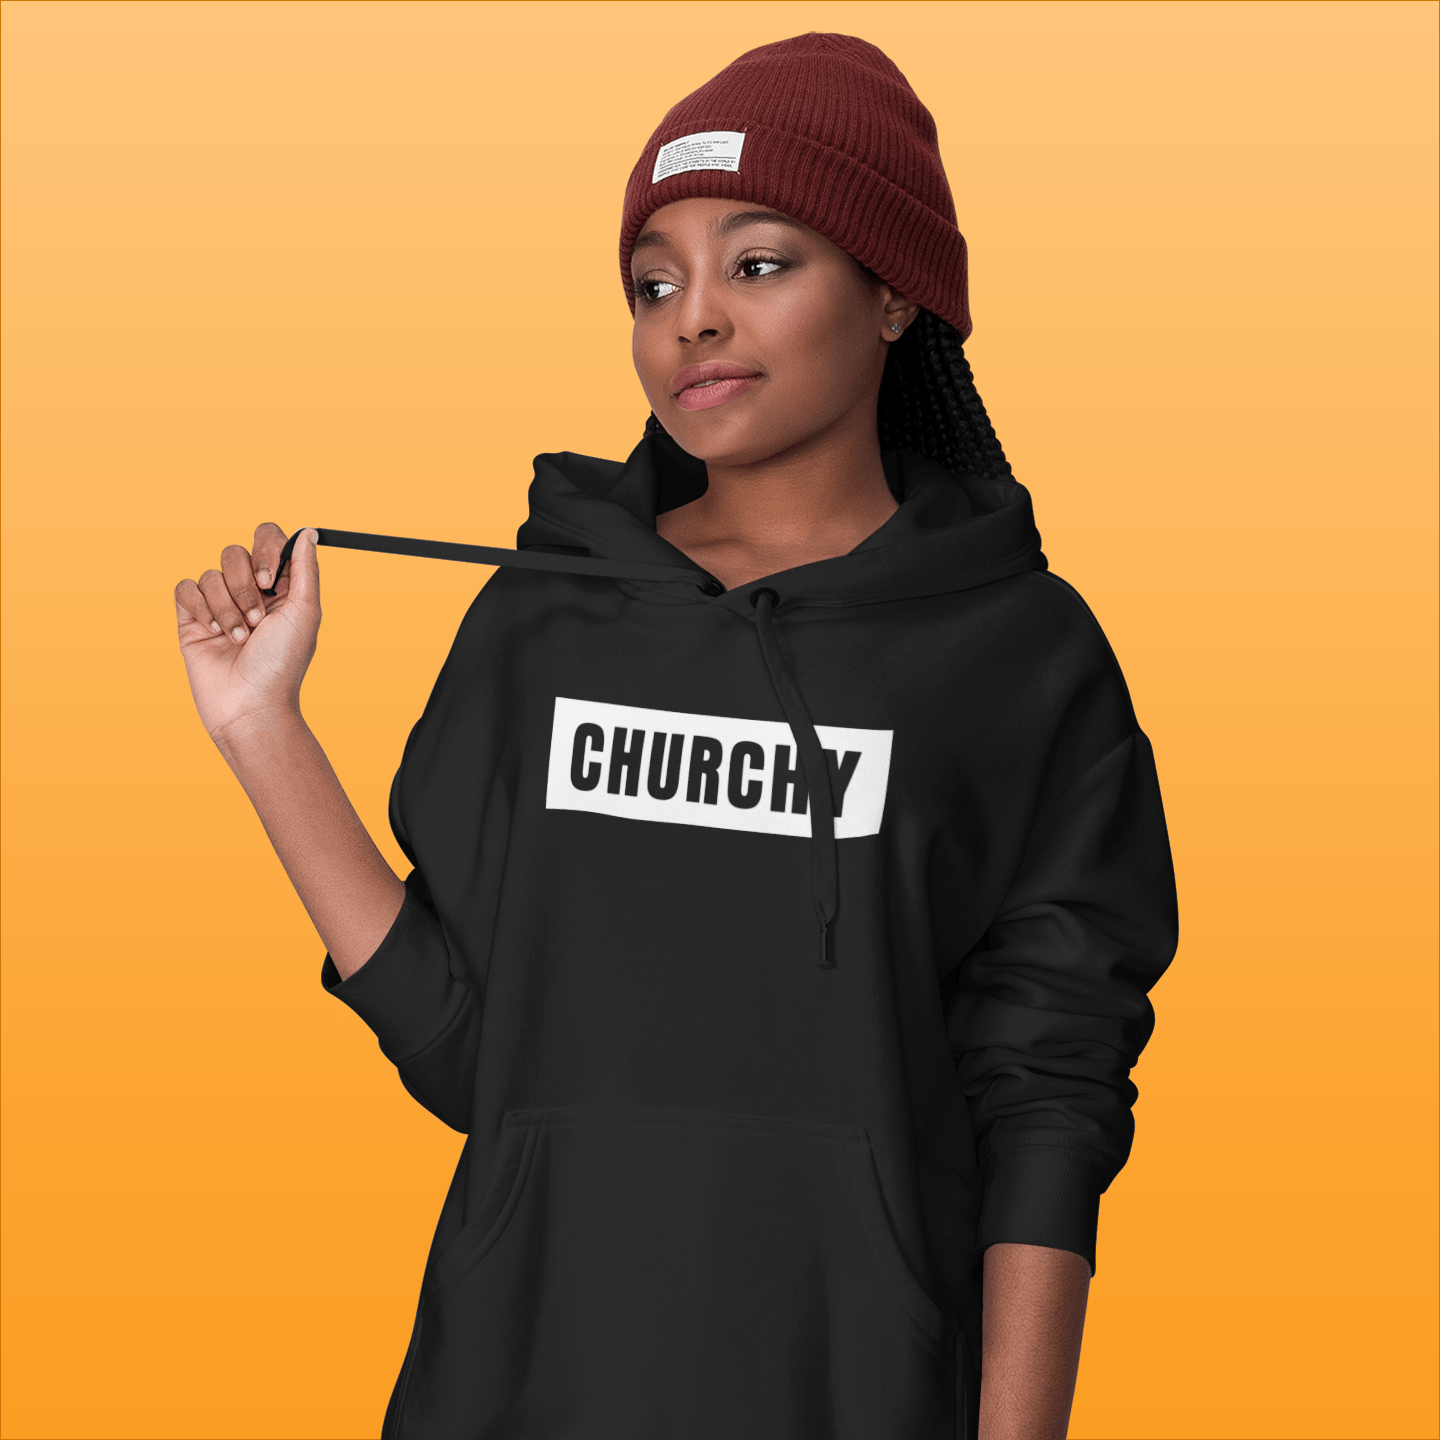 woman-churchy-hooded-sweatshirt